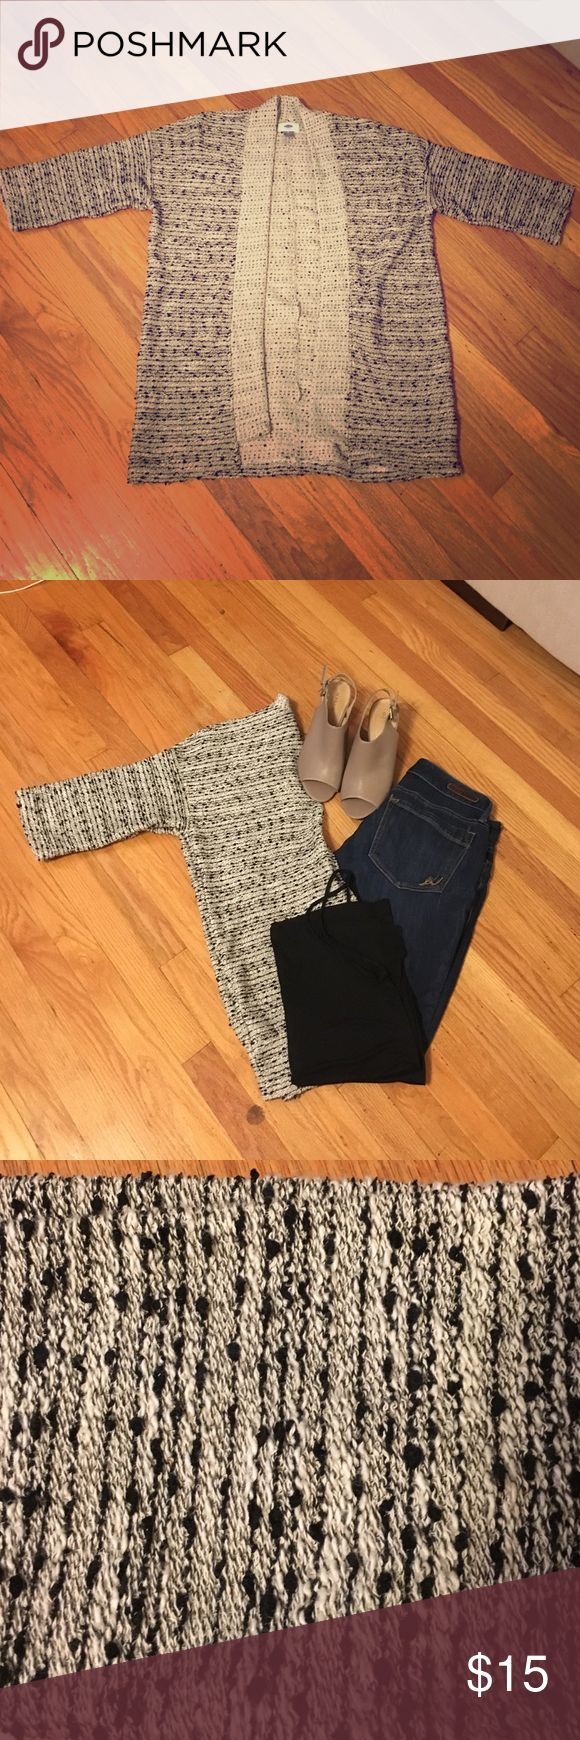 Black and White Old Navy Sweater Brand new open front black and white marled sweater Old Navy Sweaters Cardigans